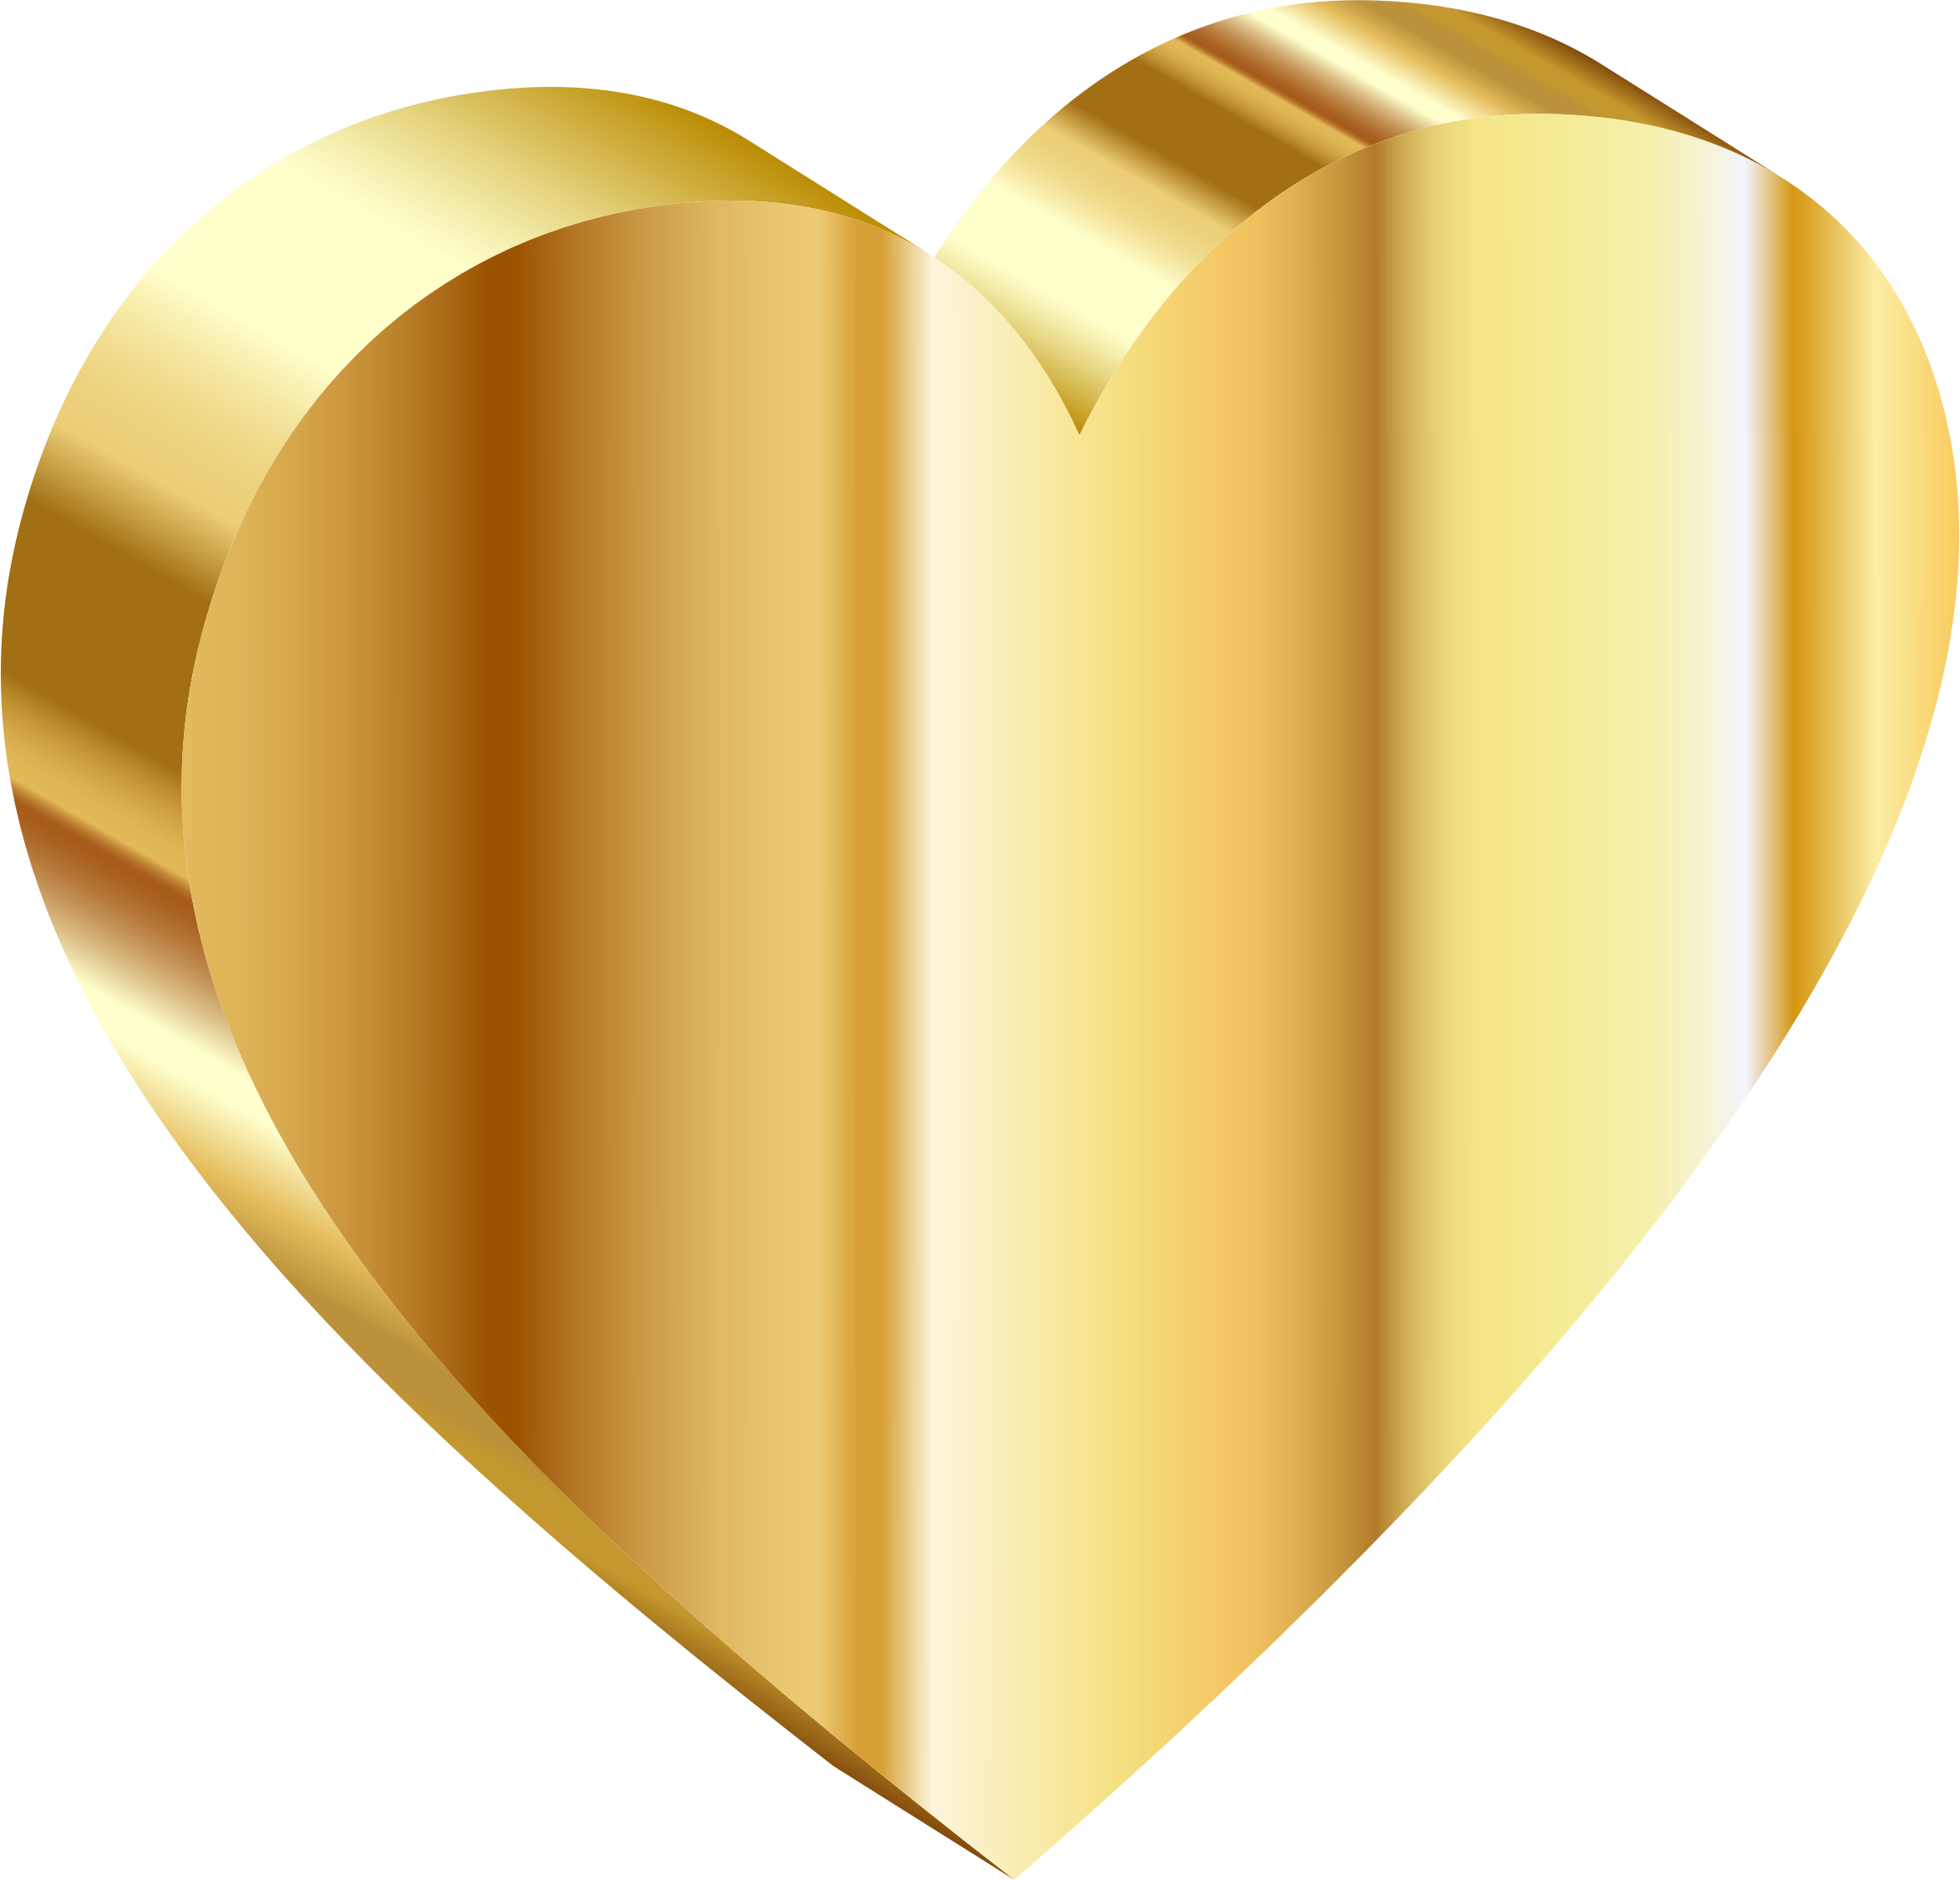 Gold heart clipart image transparent stock Clipart - 3D Heart Of Gold image transparent stock